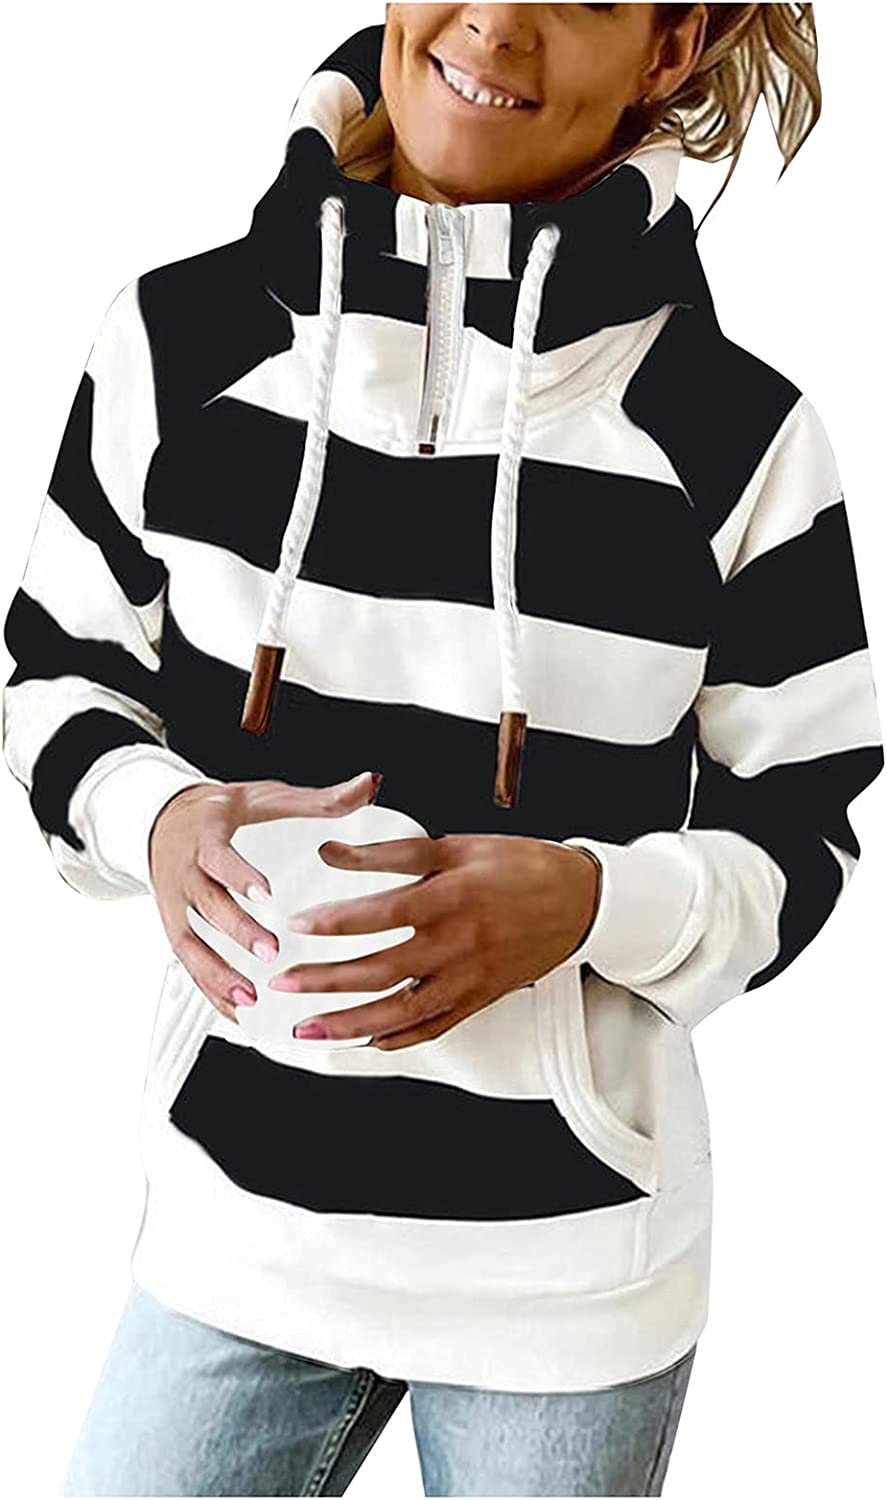 HONGJ Hoodies for Womens, Zipper Funnel Neck Drawstring Color Block Striped Patchwork Hooded Sweatshirts Casual Jackets